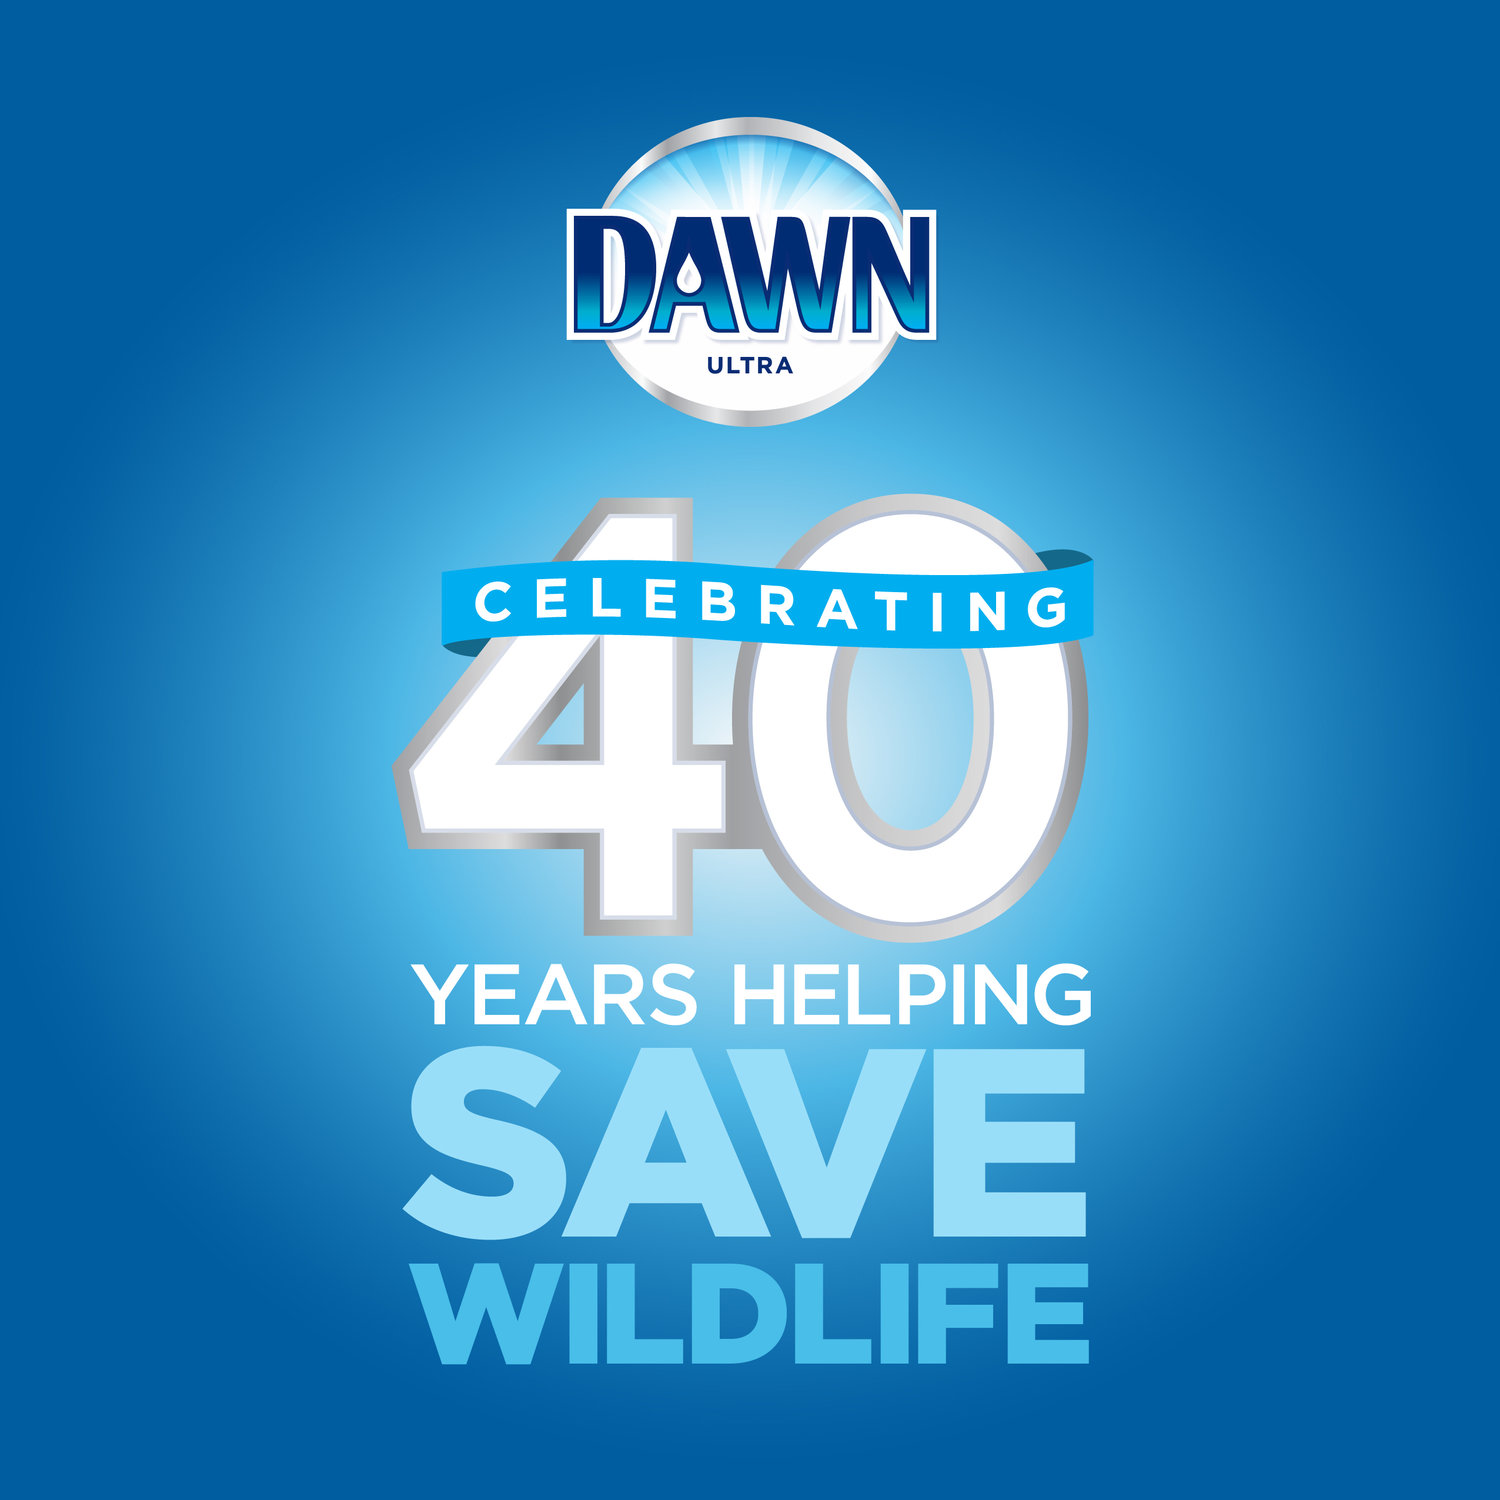 Celebratory logo - This logo was used across all advertising mediums to spread awareness of Dawns 40th year helping save wildlife.